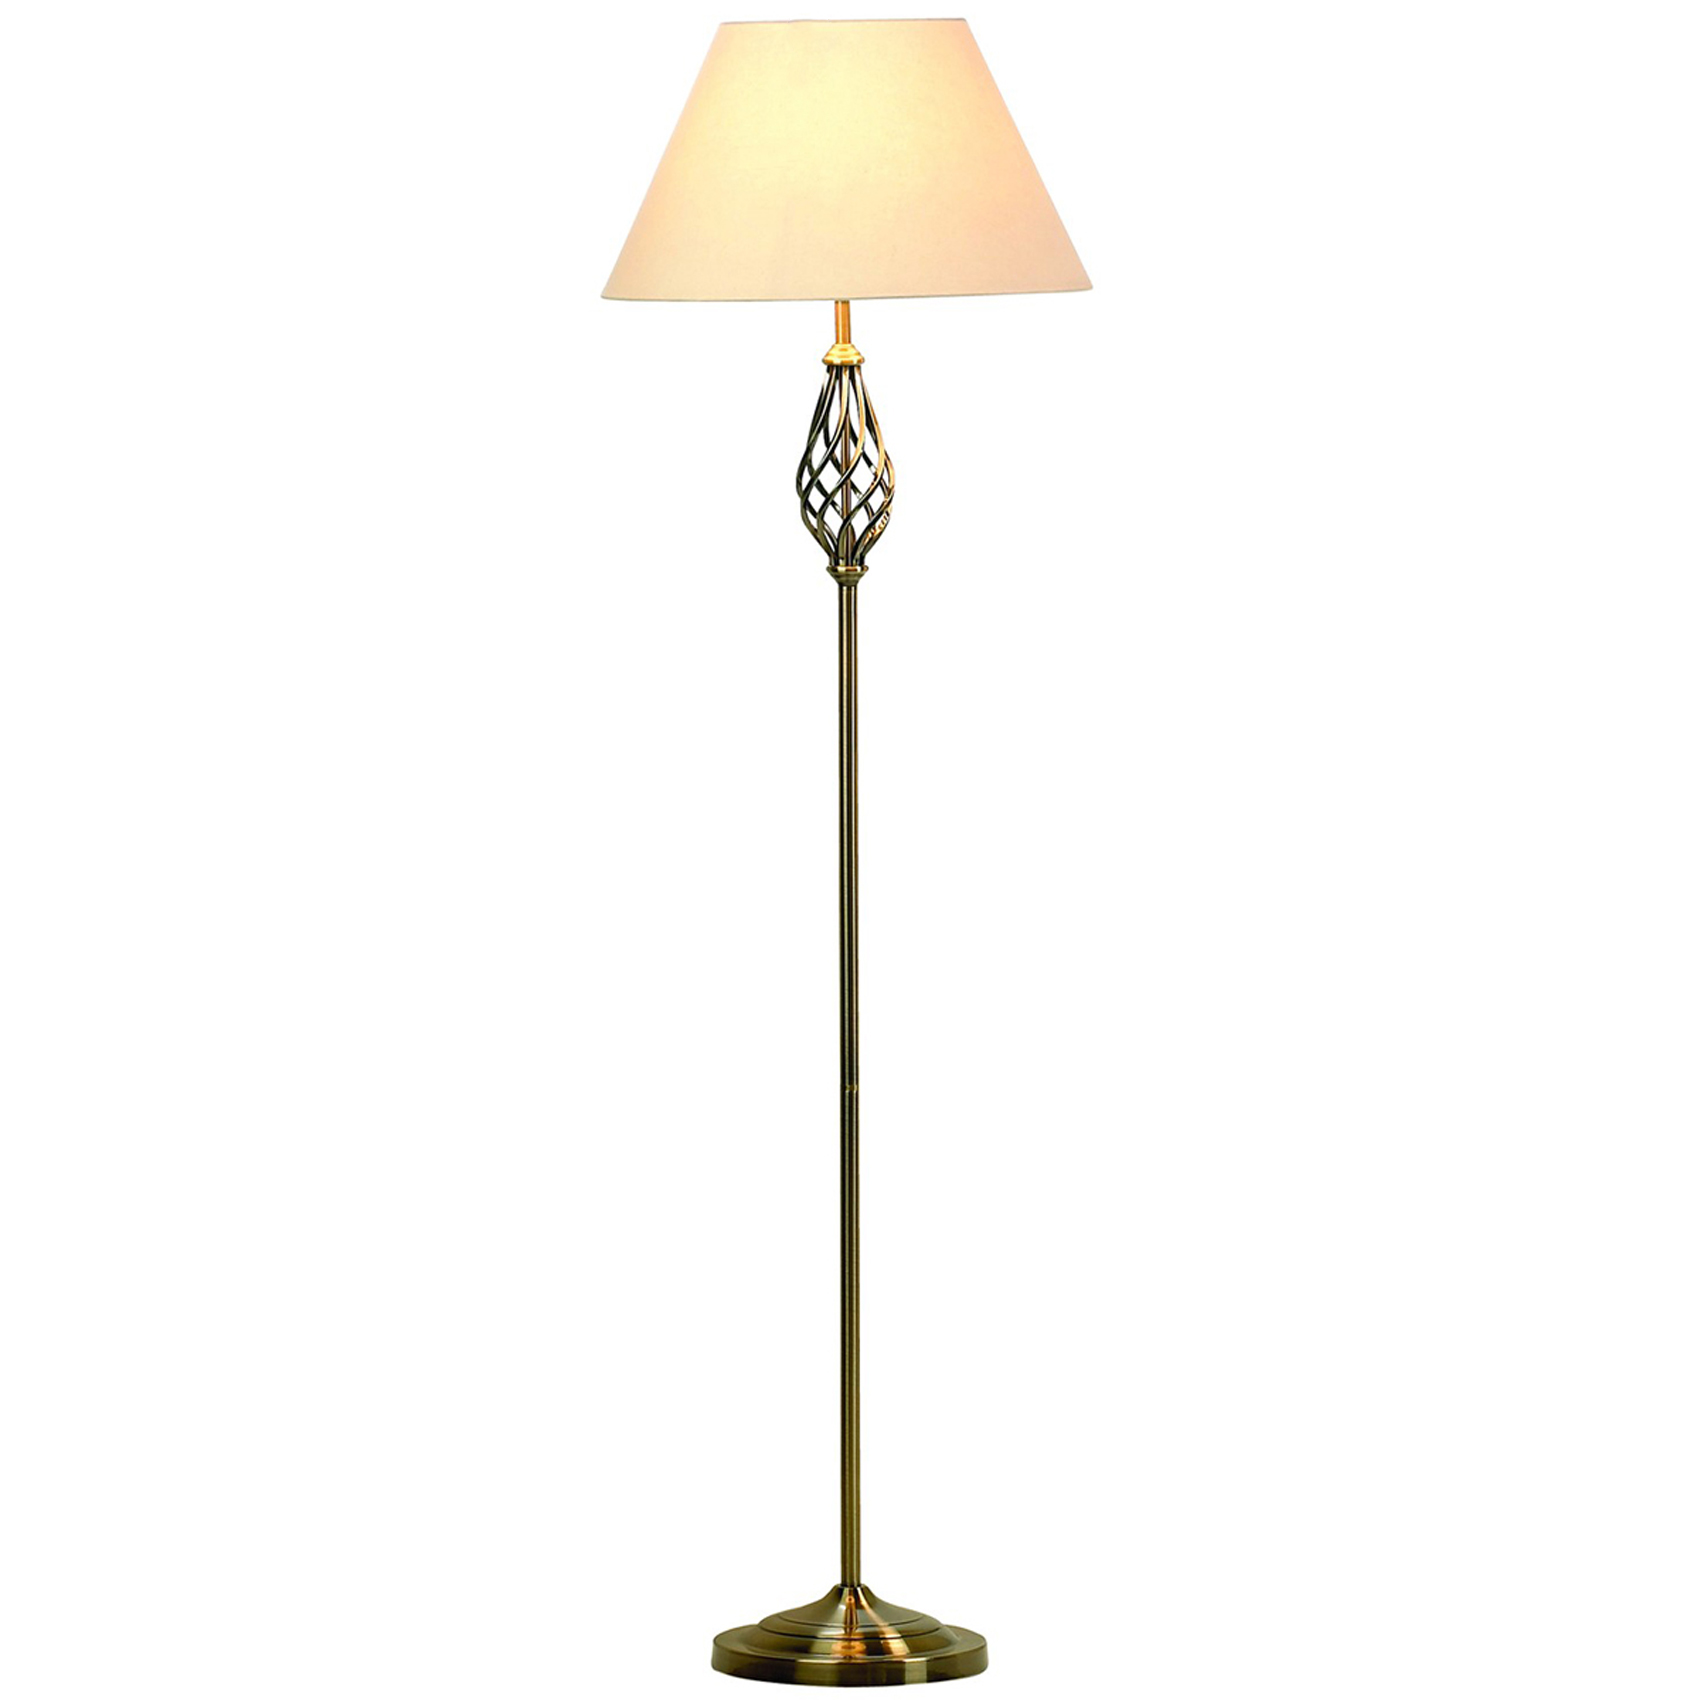 Top 10 Floor Lamps 2019 Warisan Lighting